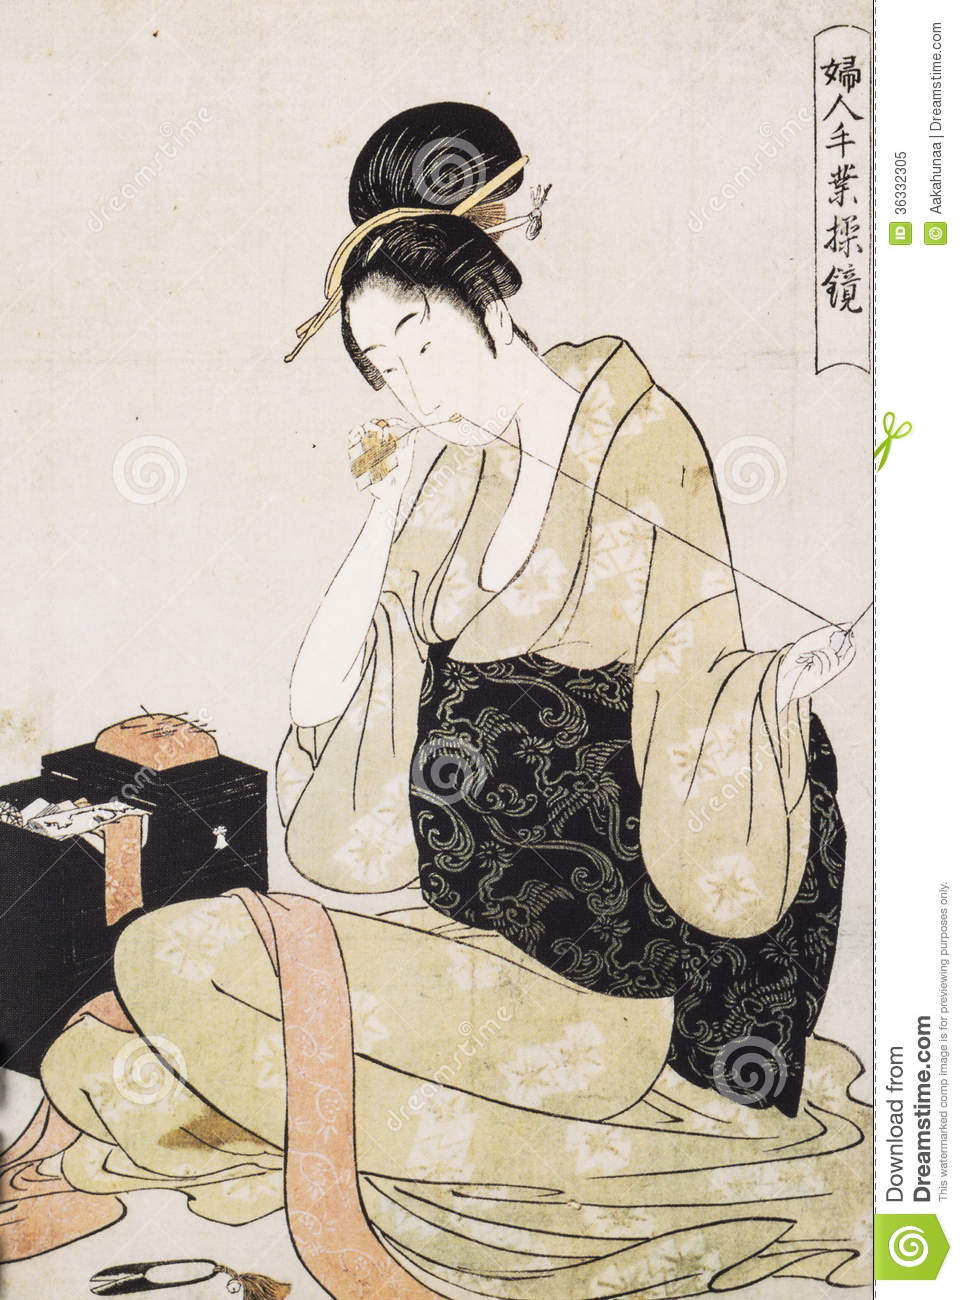 Erotic pictures of japanese women